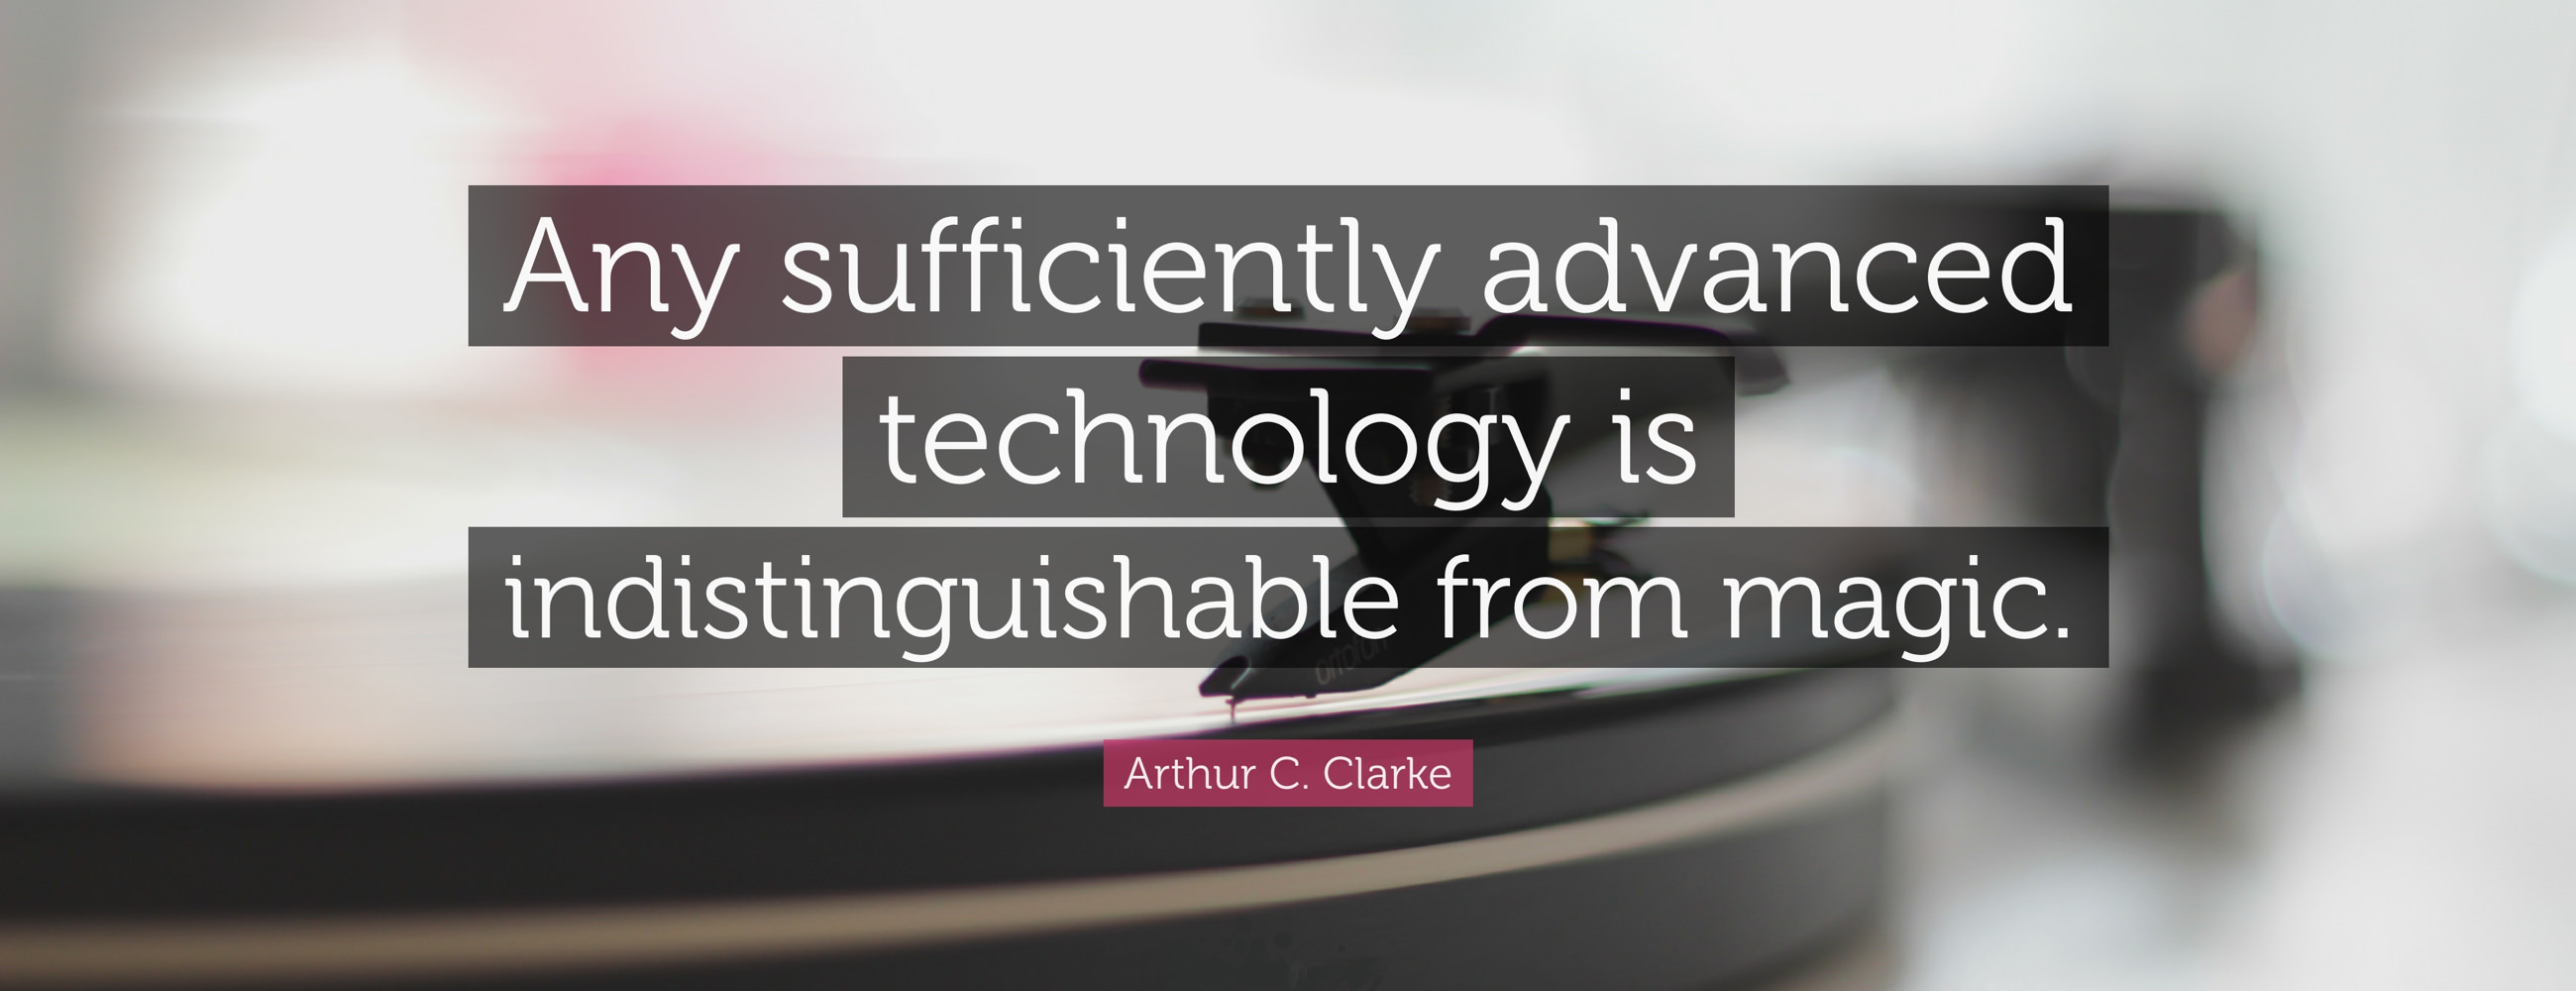 Any Sufficiently Advanced Technology ...